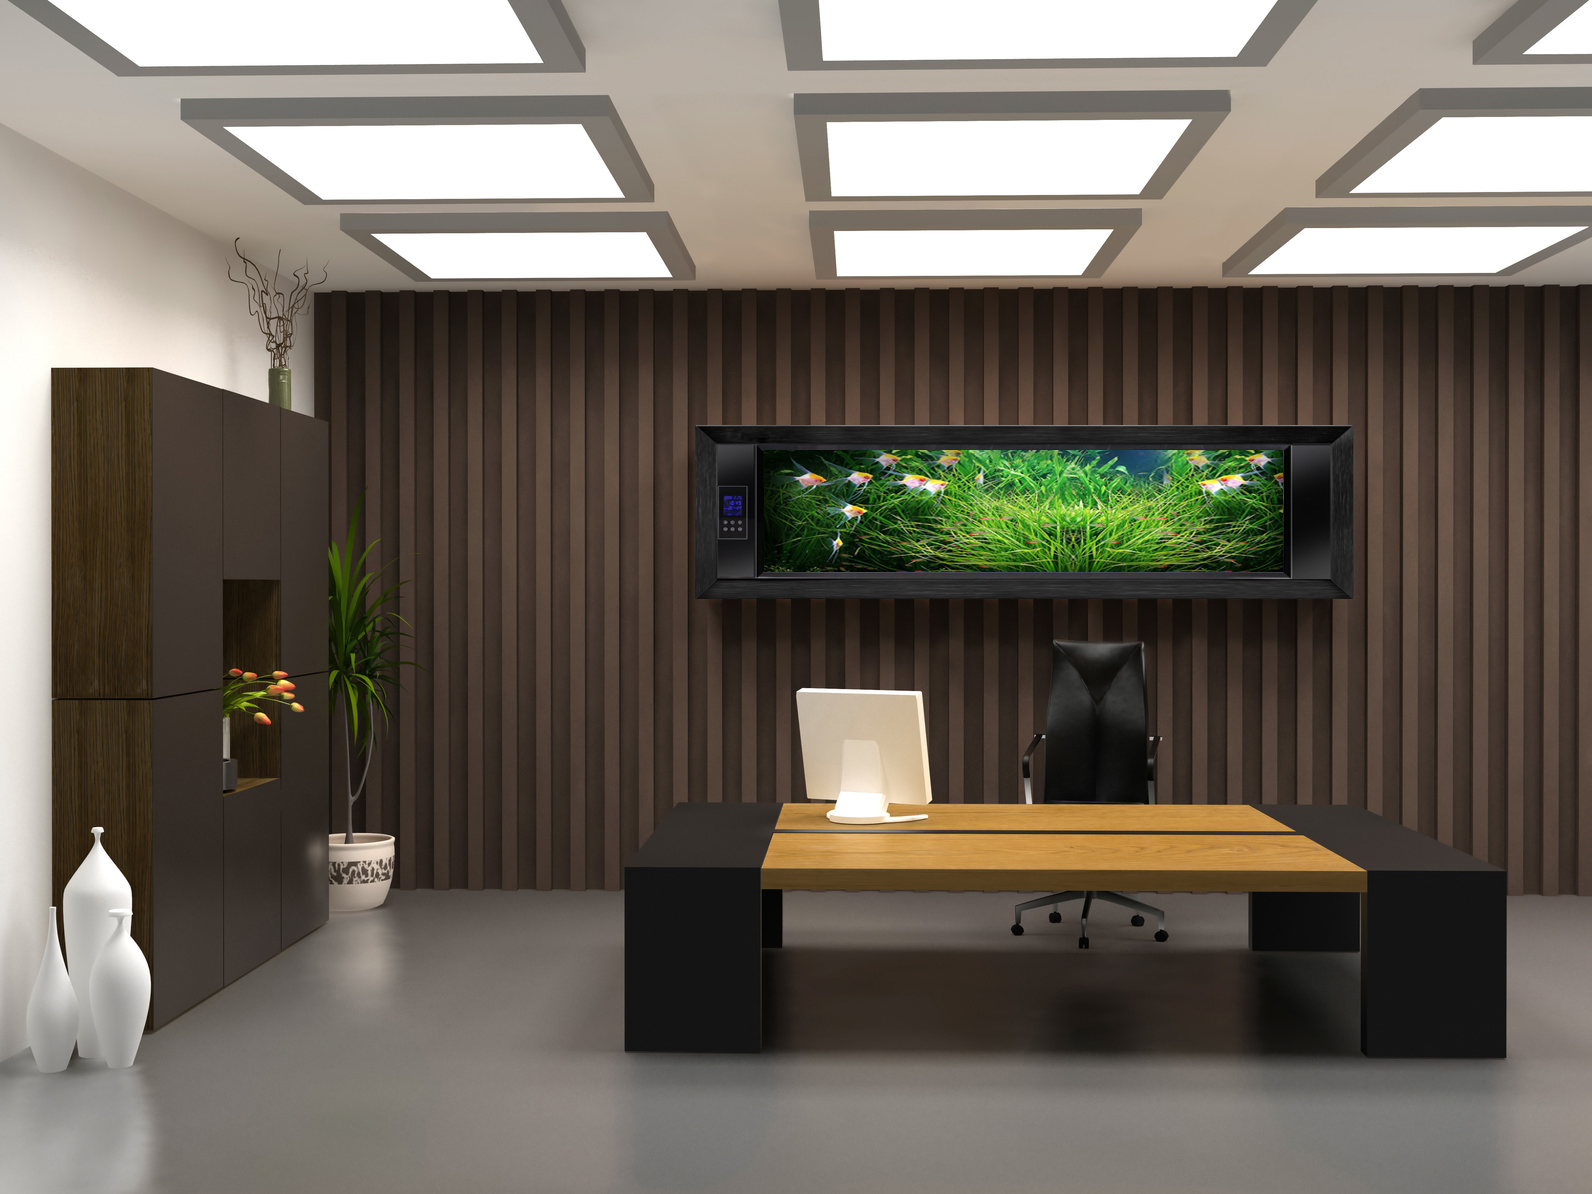 Elegant ceo office design bellisima for Office wall interior